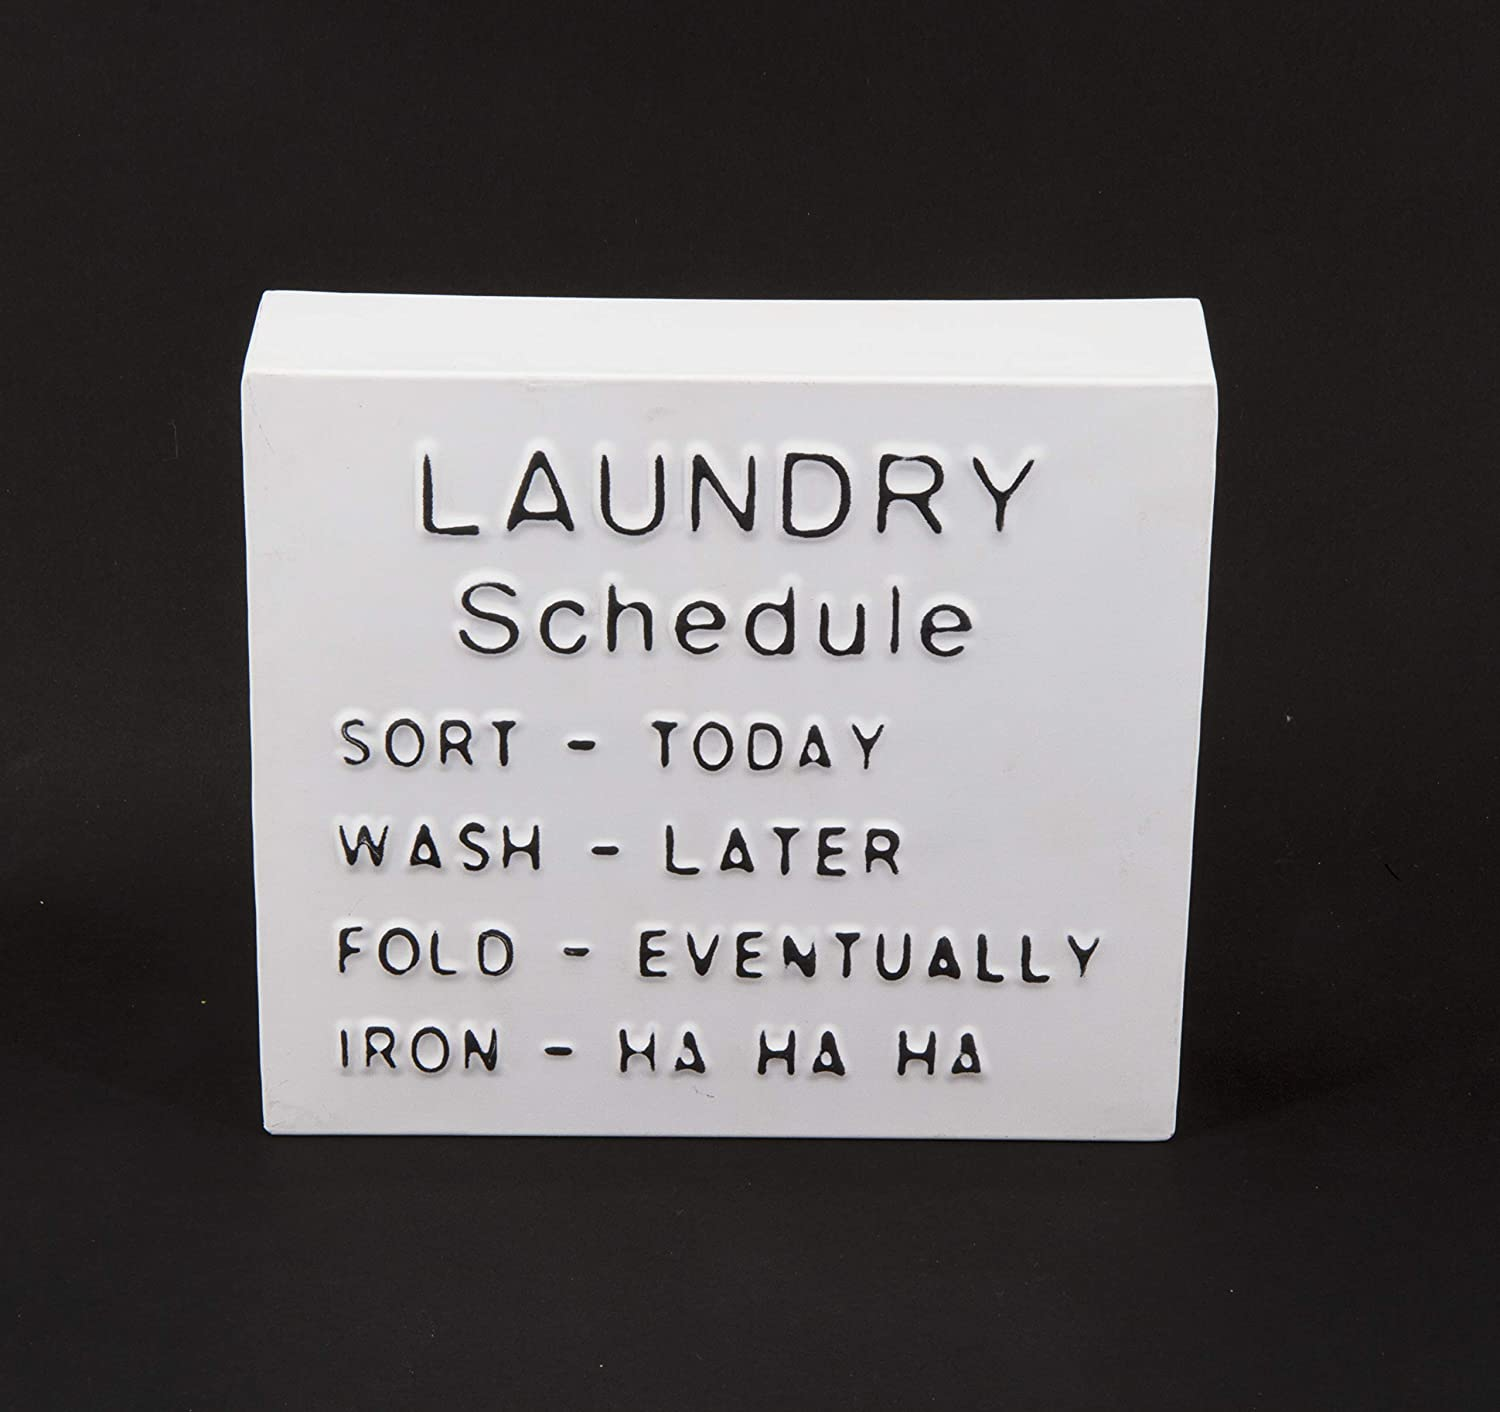 Showtime Sales Laundry Schedule Block Decoration Sign, Distressed White Home Decor Sign, Free Standing Decoration, Dimensional Art, Text, Wording, Graphics Wall Decor, Wall Art, Fully Assembled